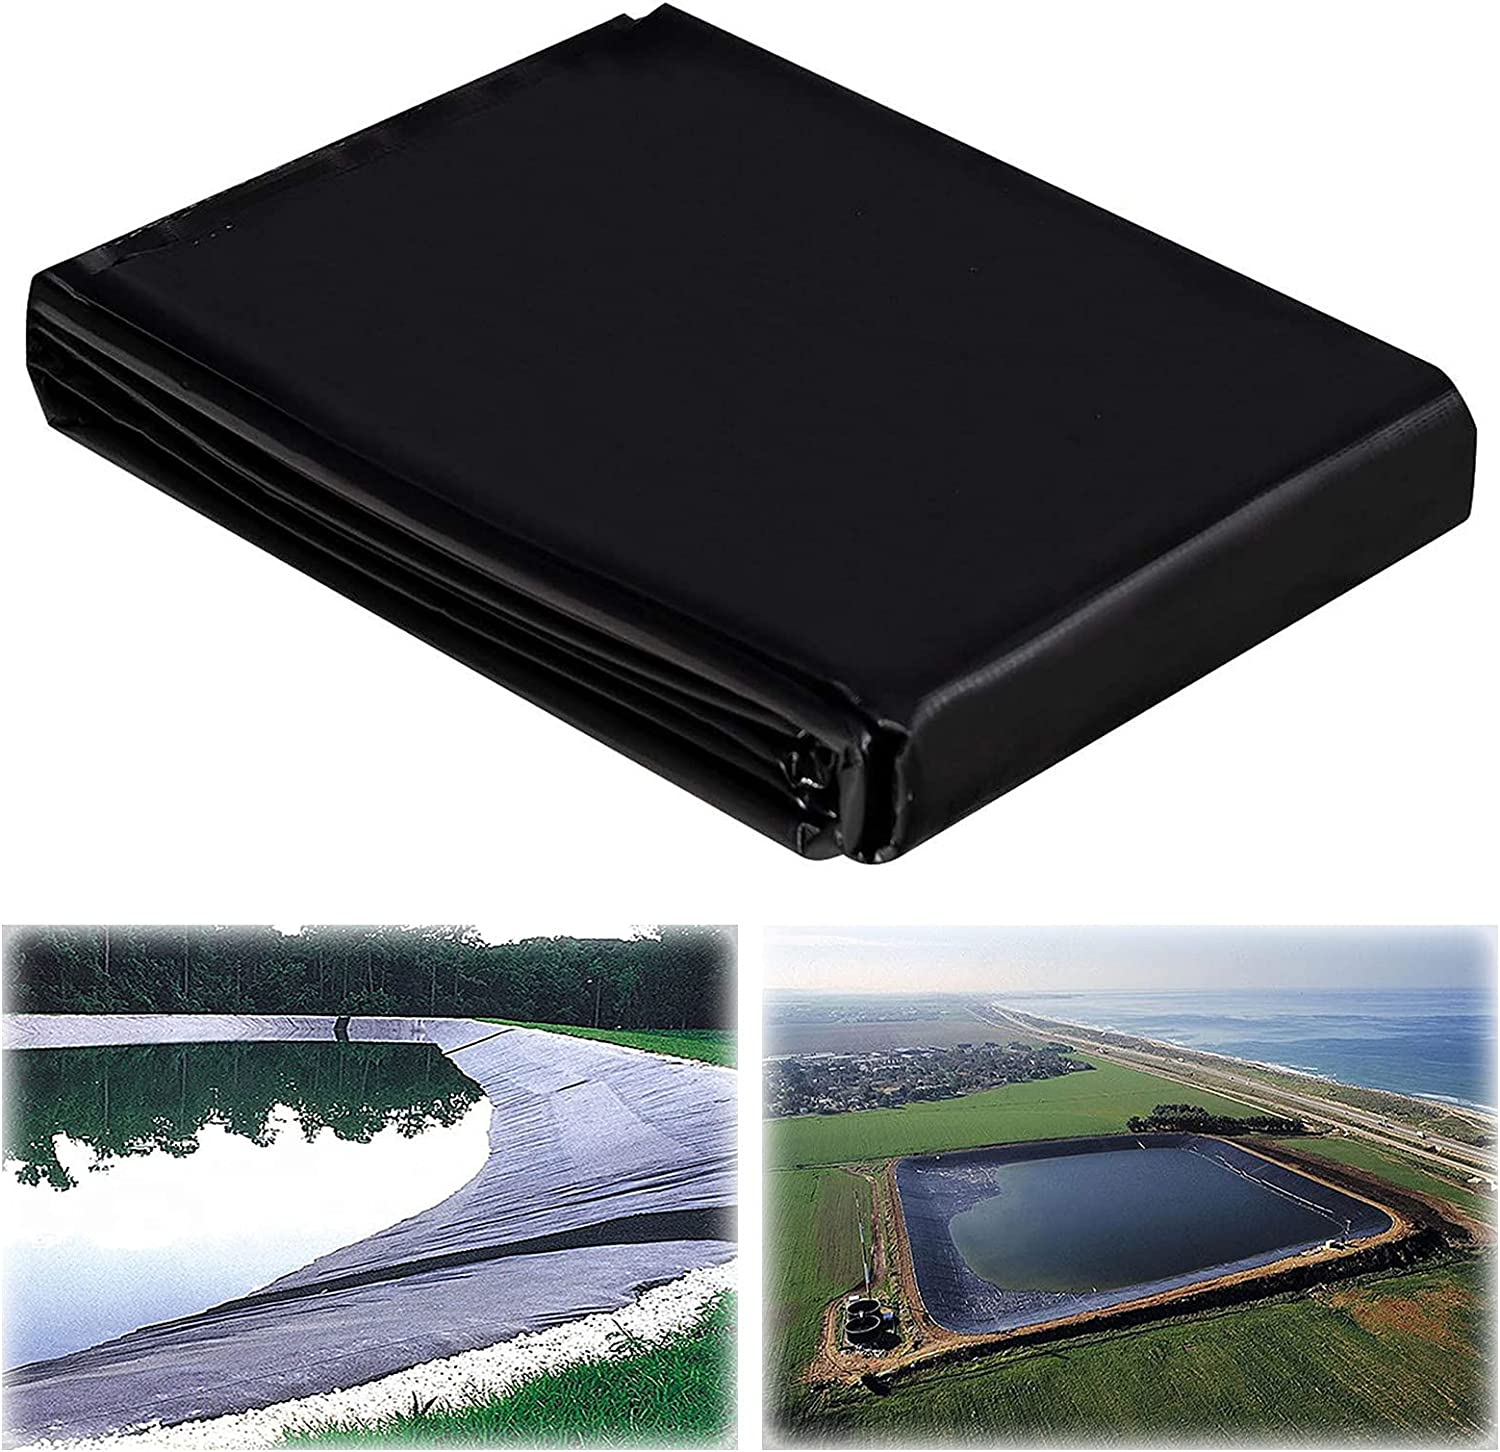 ZBYL Black Pond Sale Liner 3x4ft 8 Durable HDPE Rubber Skin Miami Mall mil